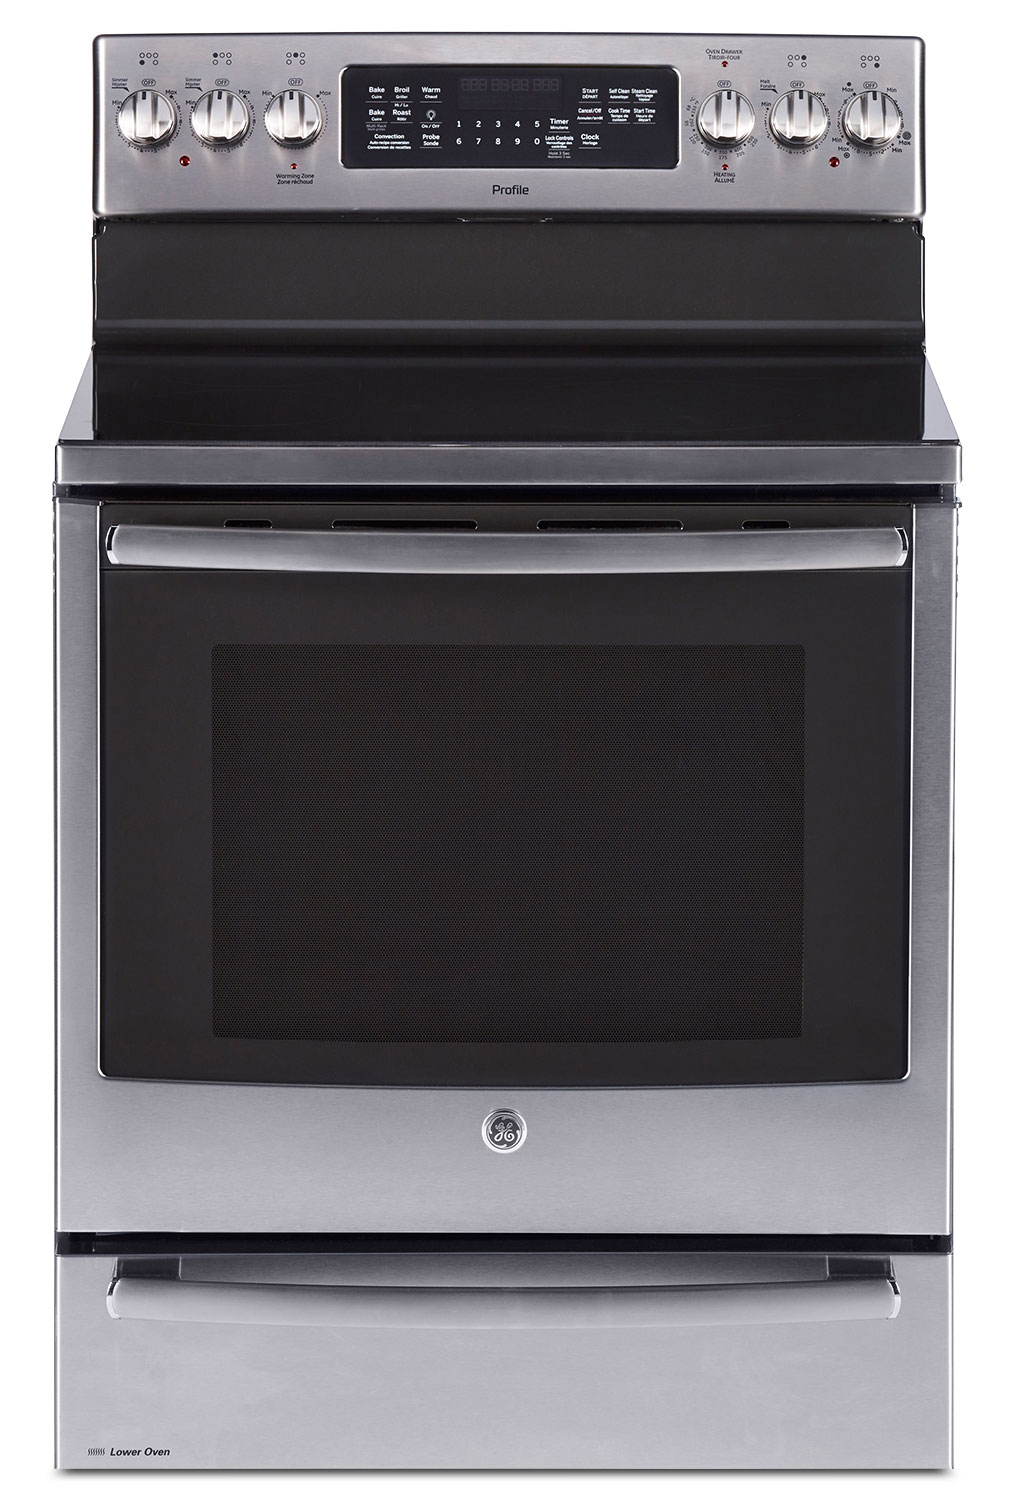 Cooking Products - GE 6.2 Cu. Ft. Freestanding Electric Range with Baking Drawer – PCB985SKSS